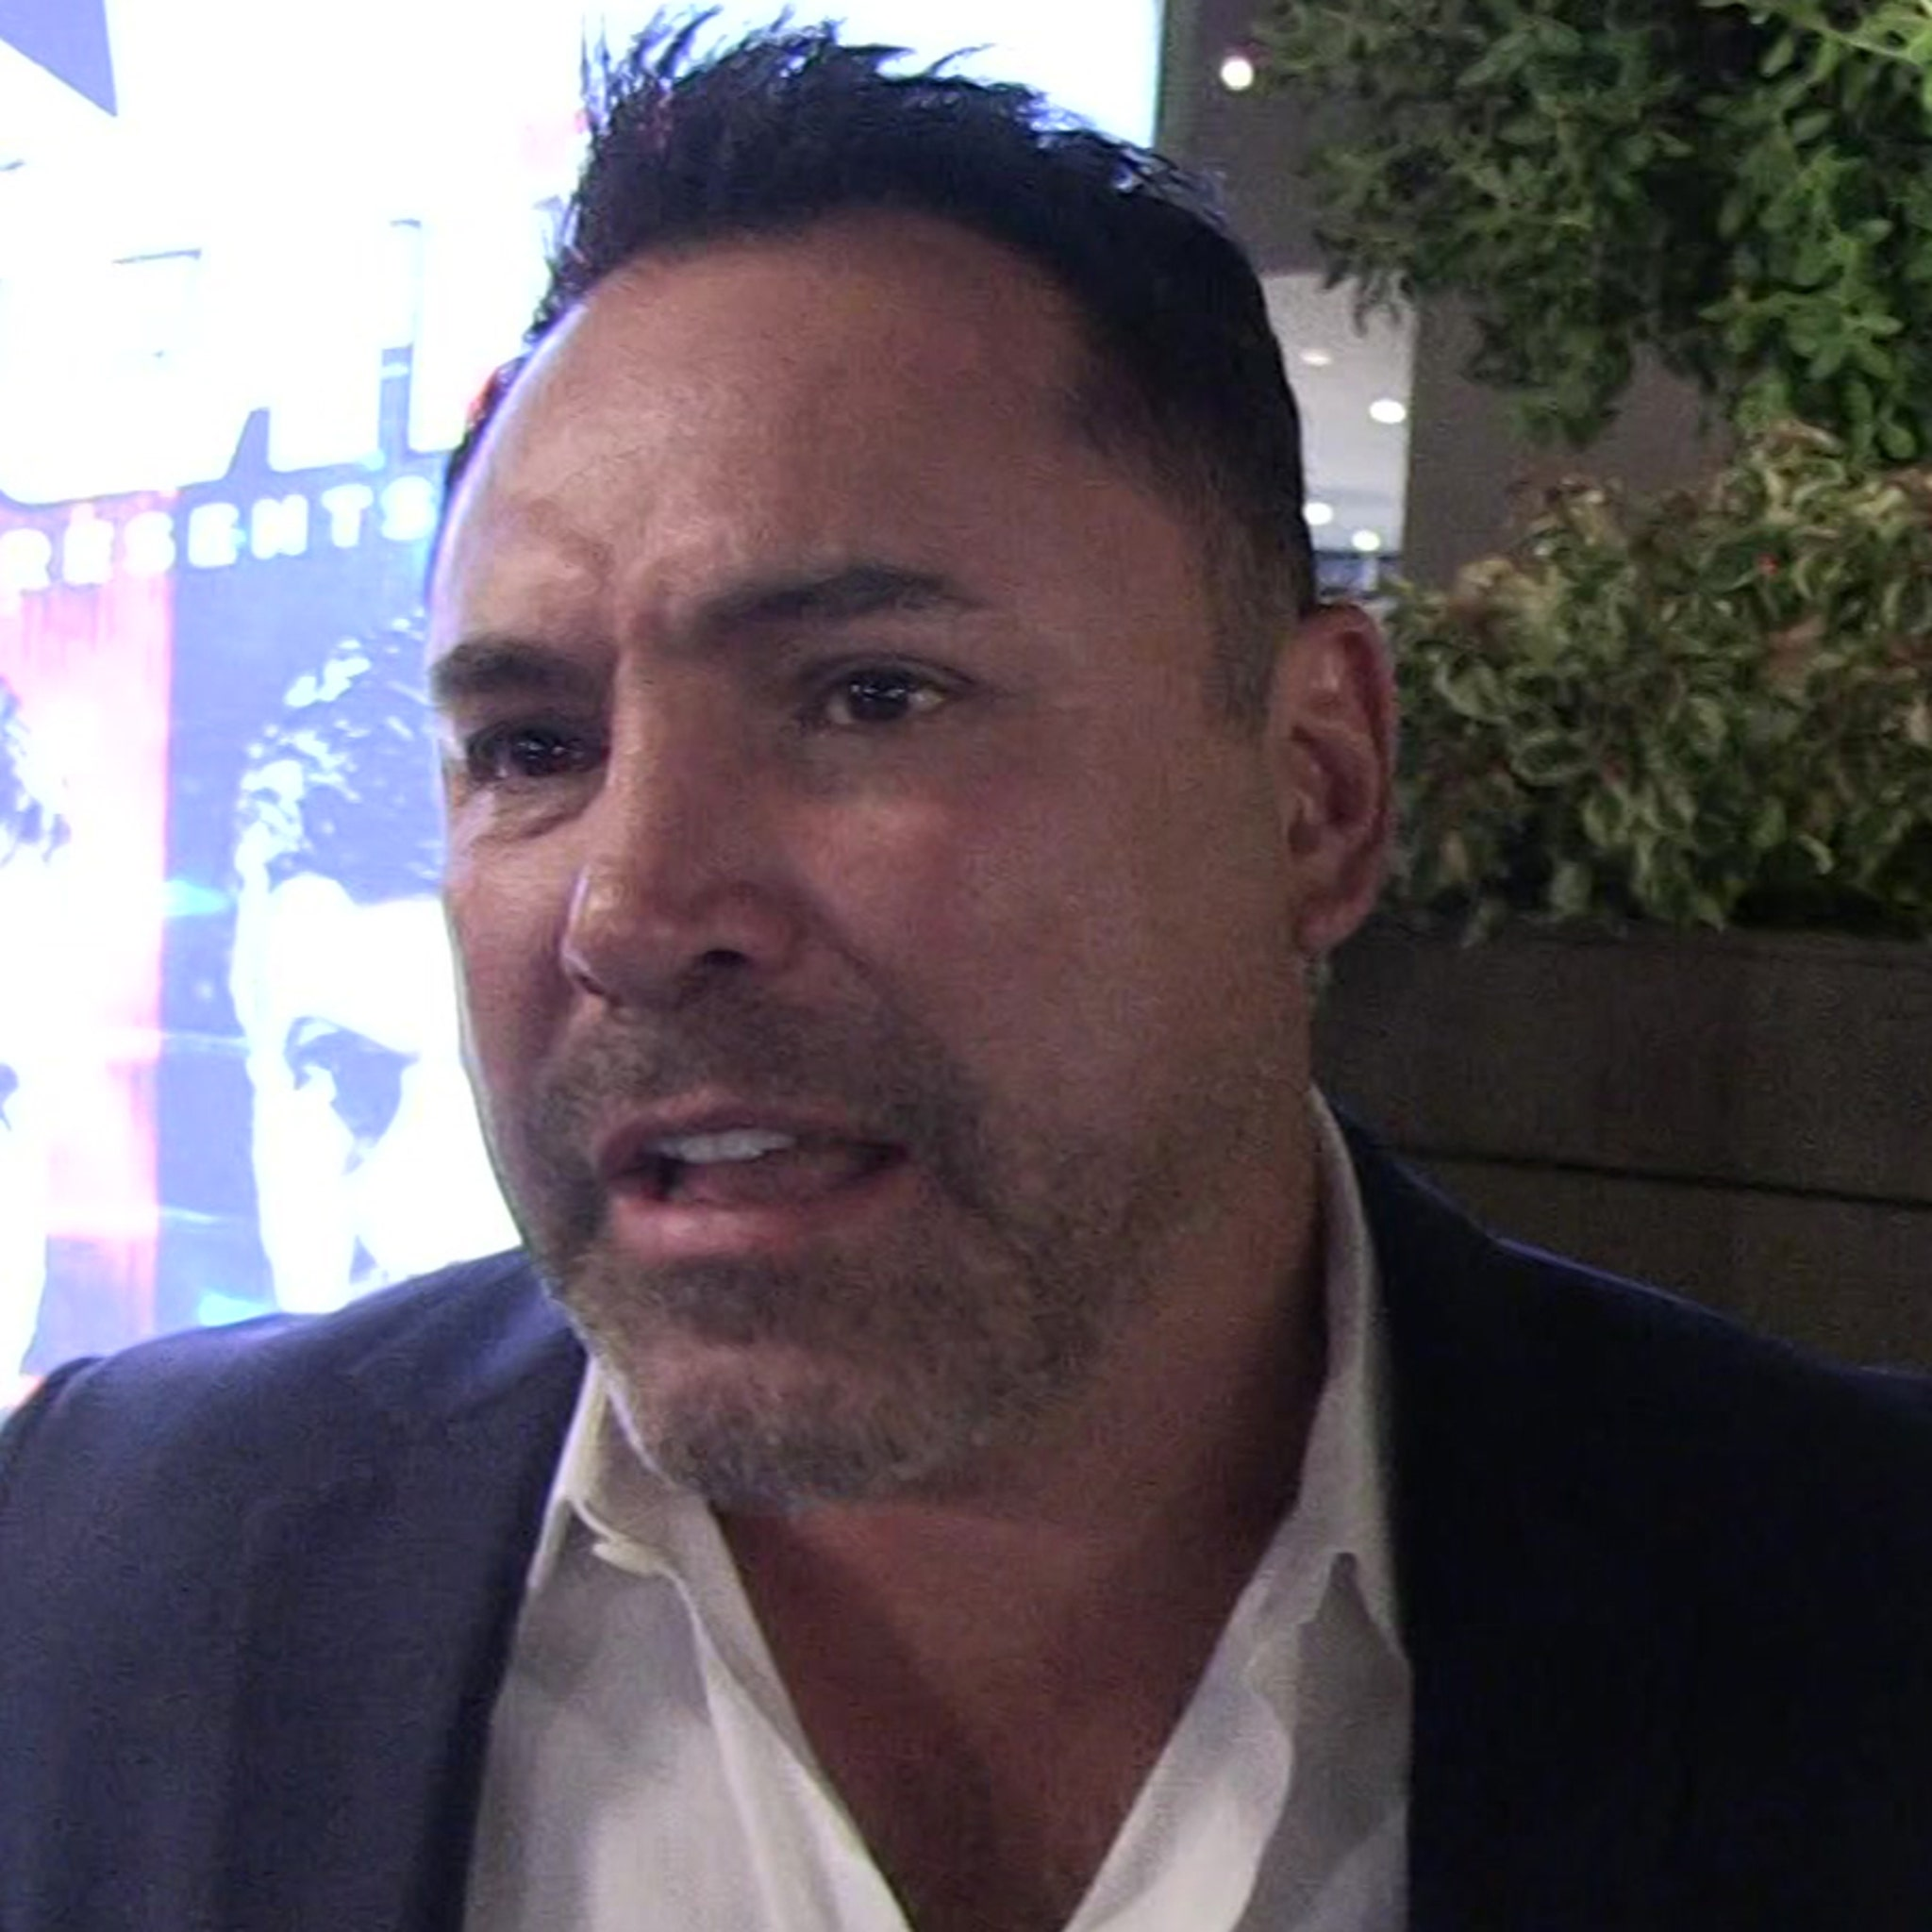 Oscar De La Hoya Accused of Mistreating Staffer While 'Highly Intoxicated'